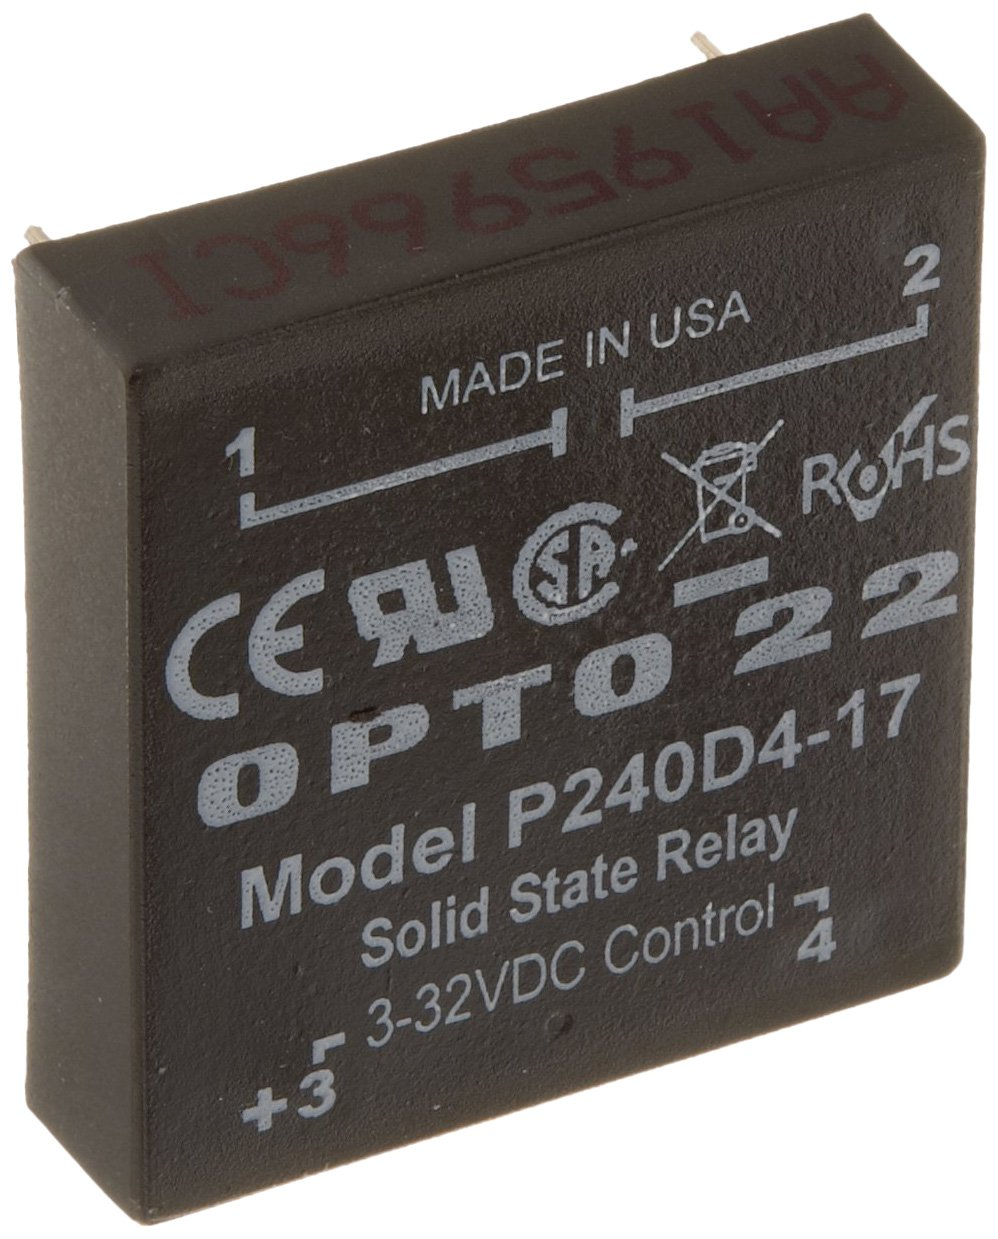 Opto 22 P240D4-17 P Model DC Control Solid State Relay Replacement Part Only, 240 VAC, 4 Amps